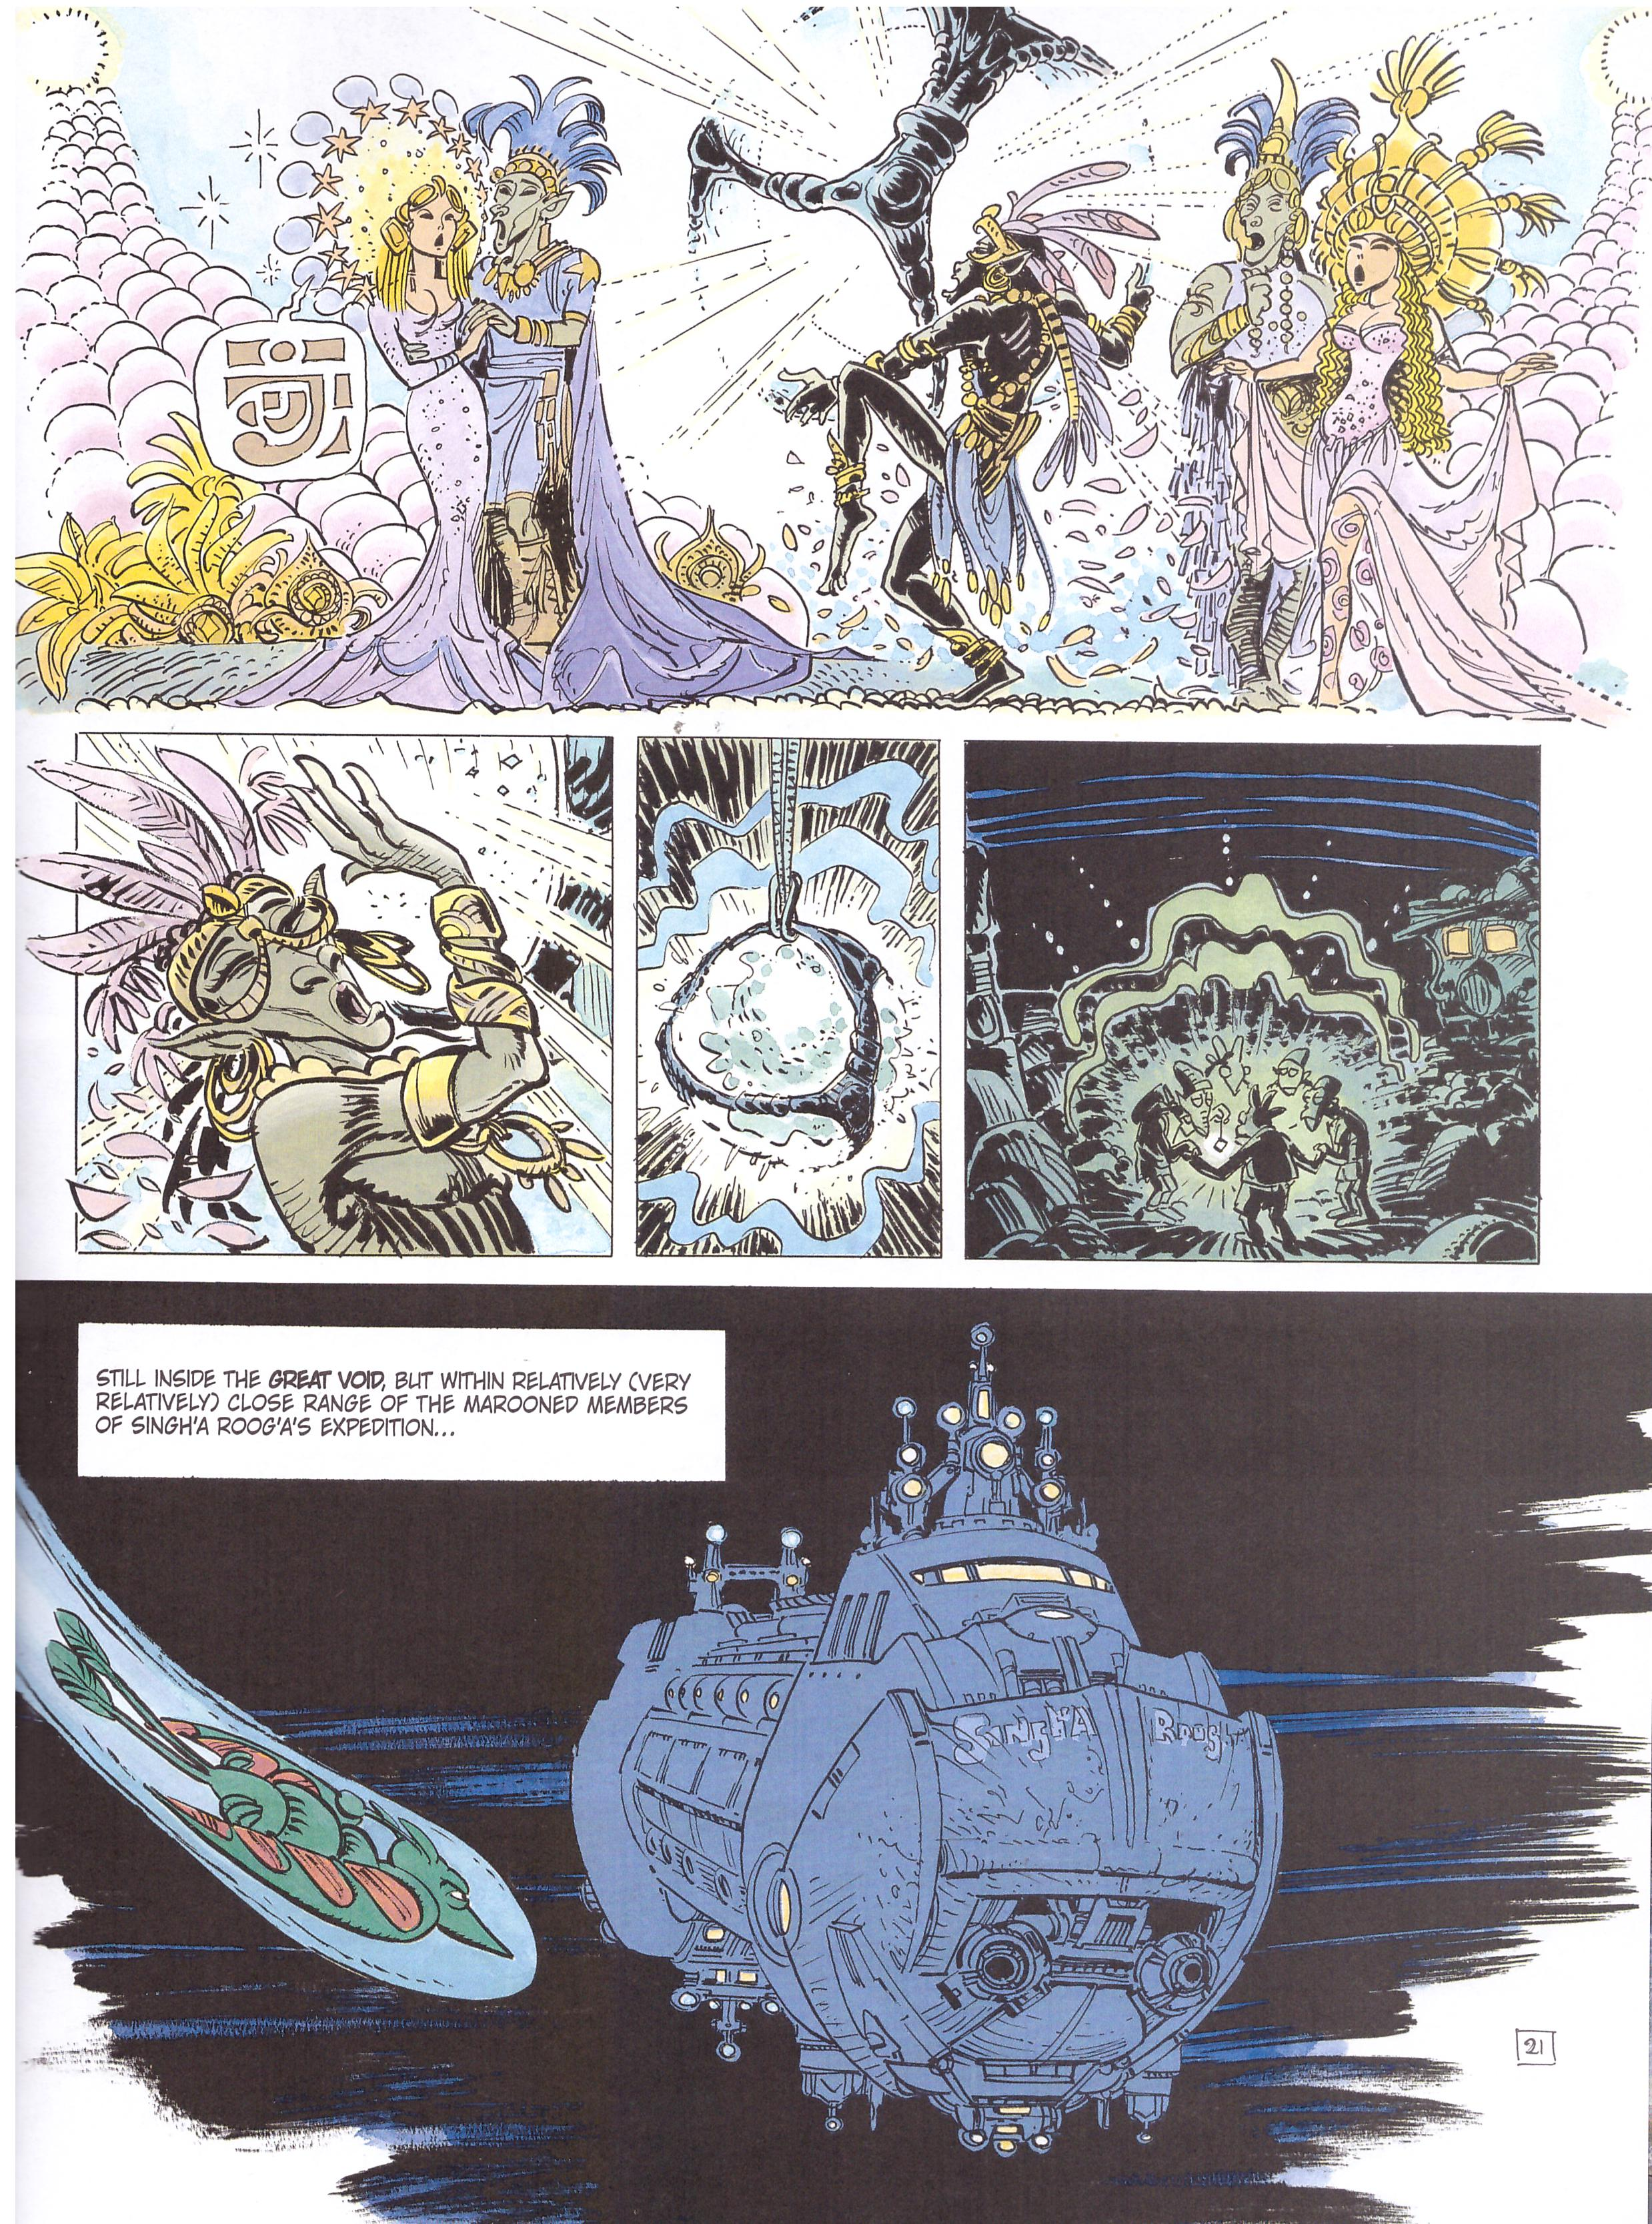 Valerian and Laureline the Order of the Stones review